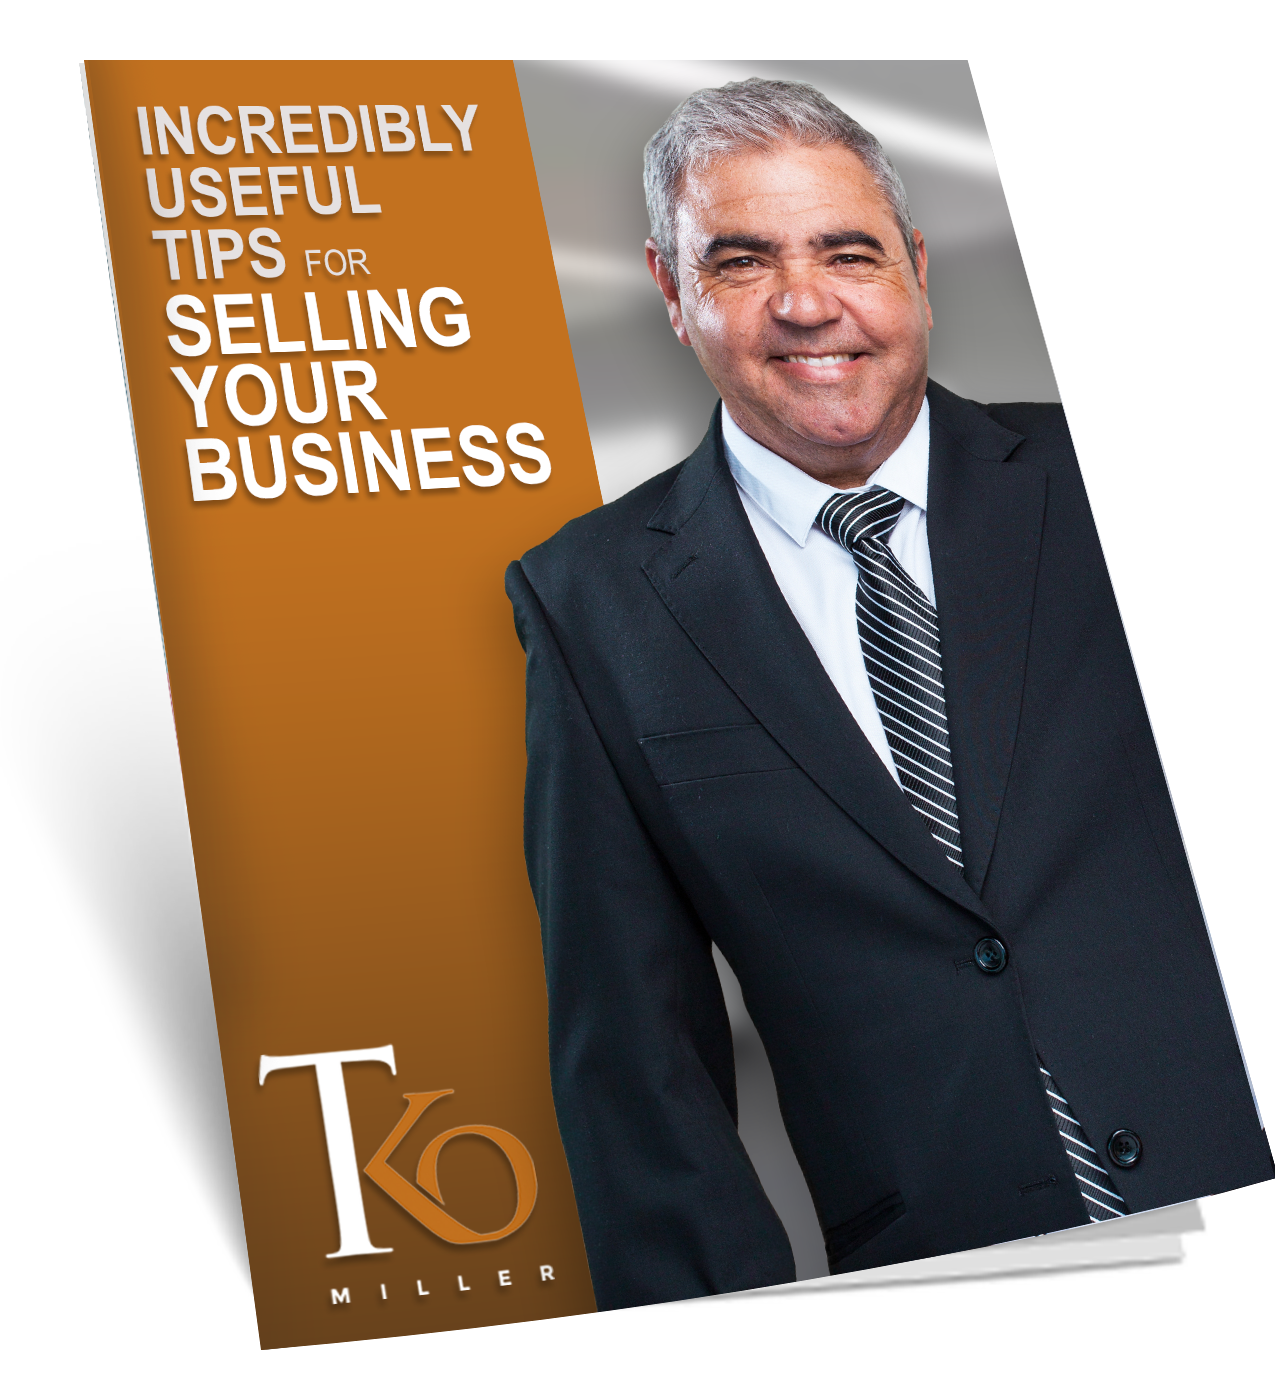 eBook - Tips - Sell Business copy.png